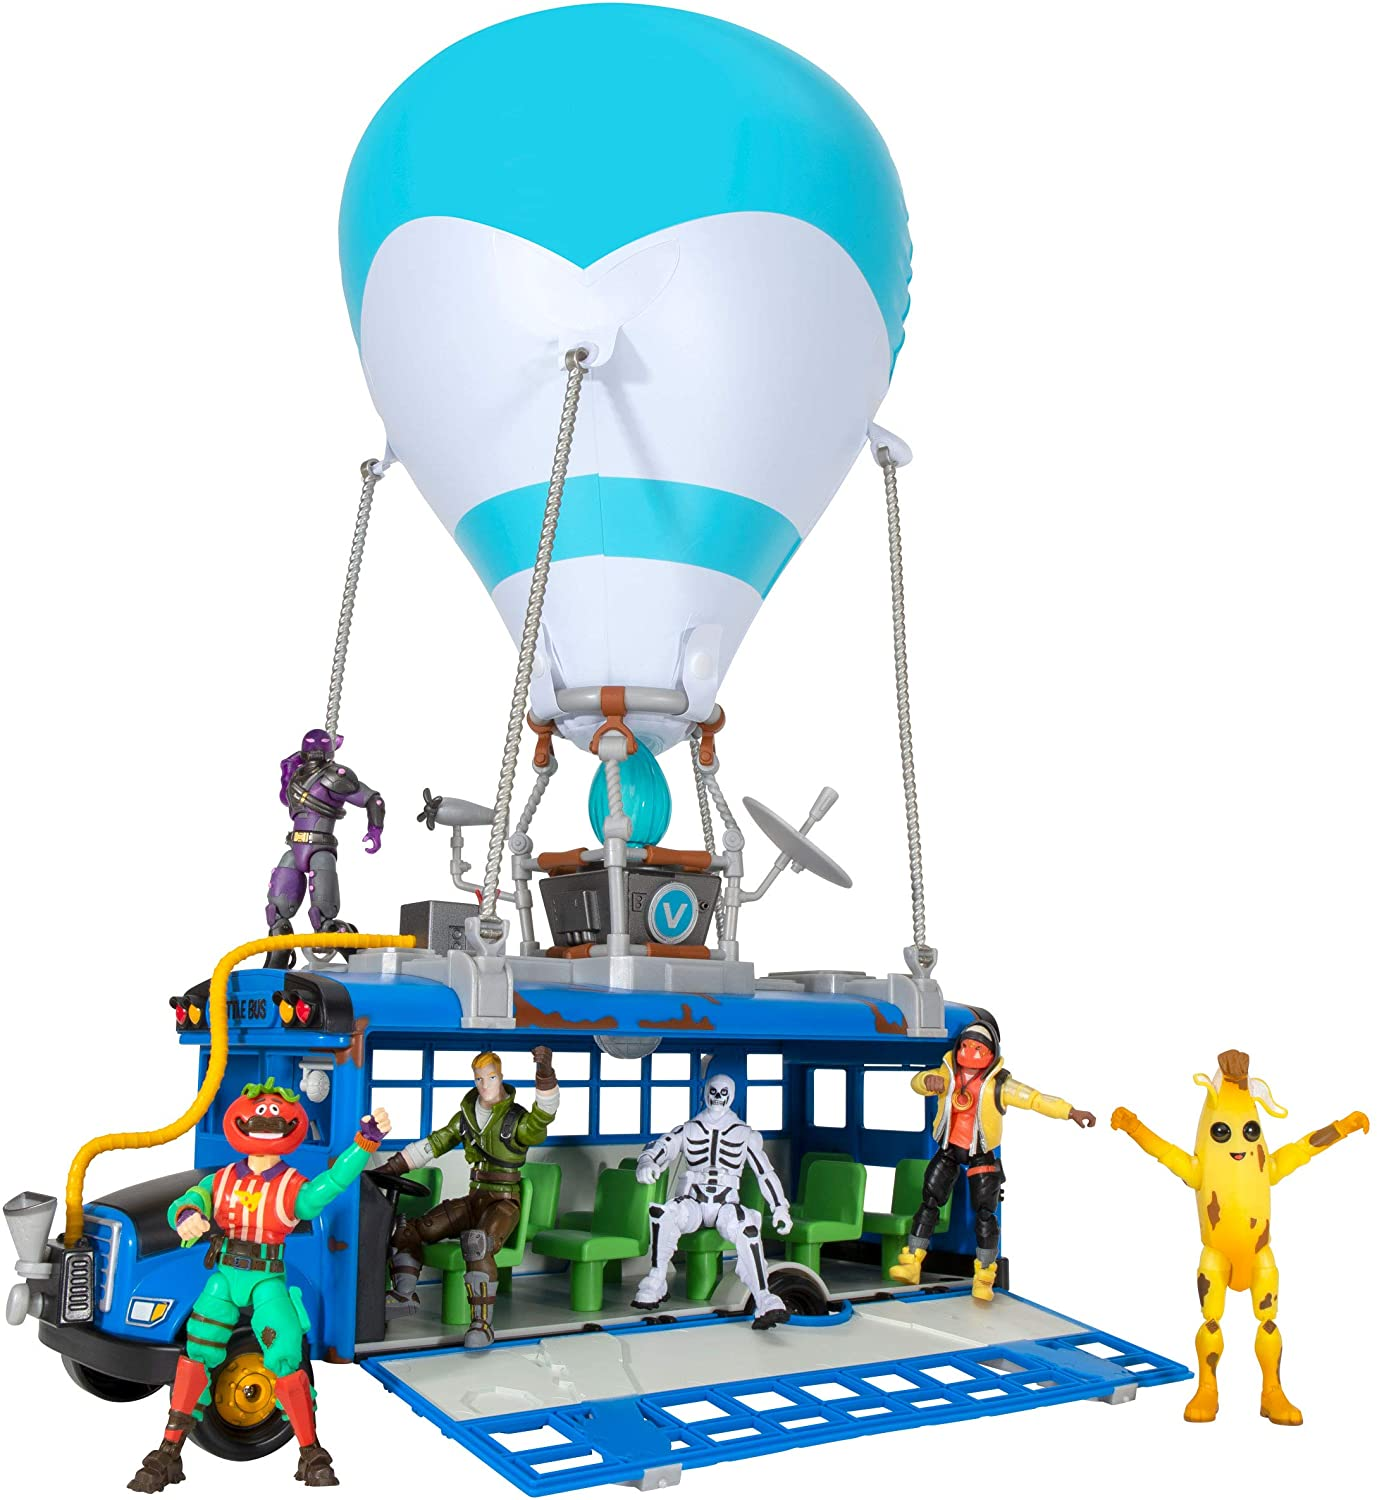 The Fortnite Battle Bus decked out with players, ready to drop them into the map for some good, old-fashioned battle royale gaming.